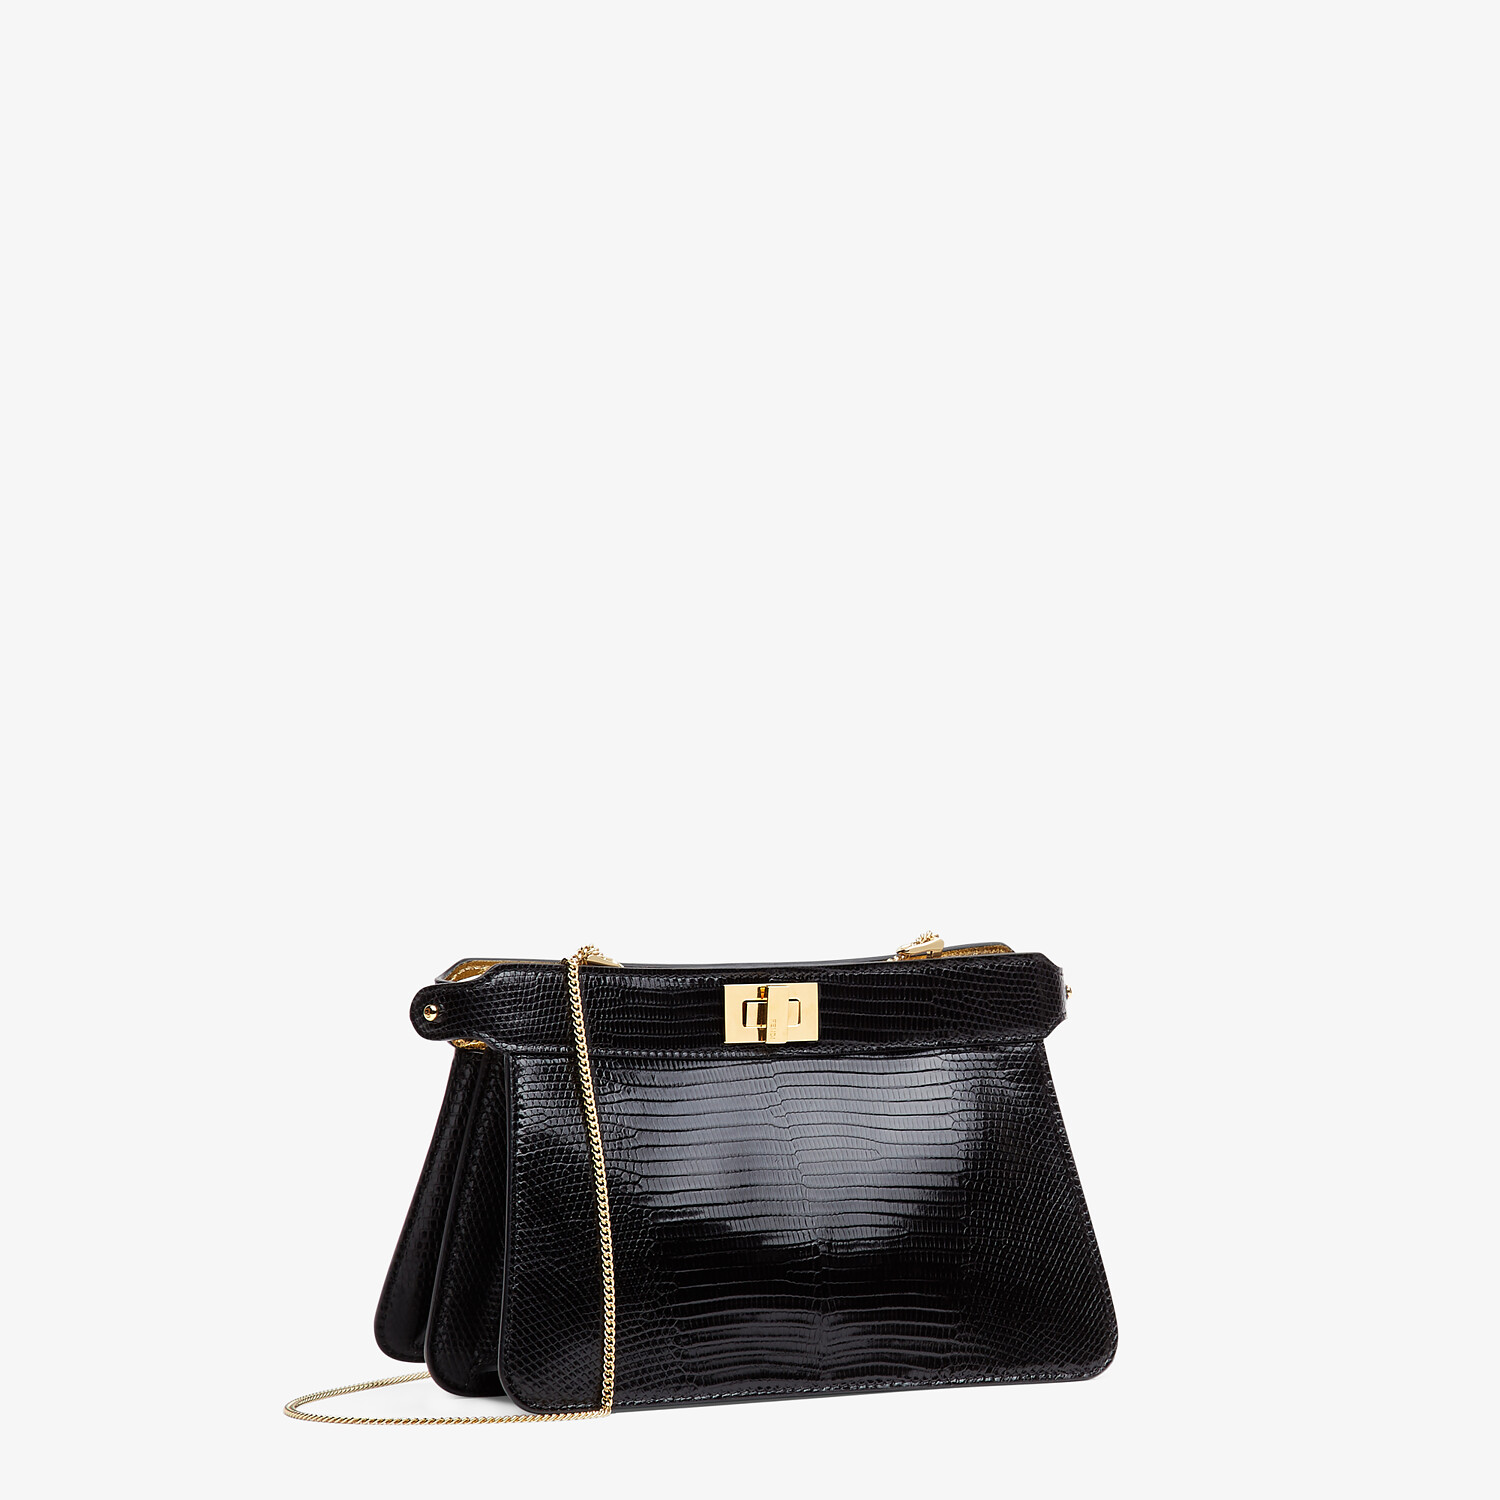 FENDI PEEKABOO ISEEU POCHETTE - Black lizard leather bag - view 3 detail